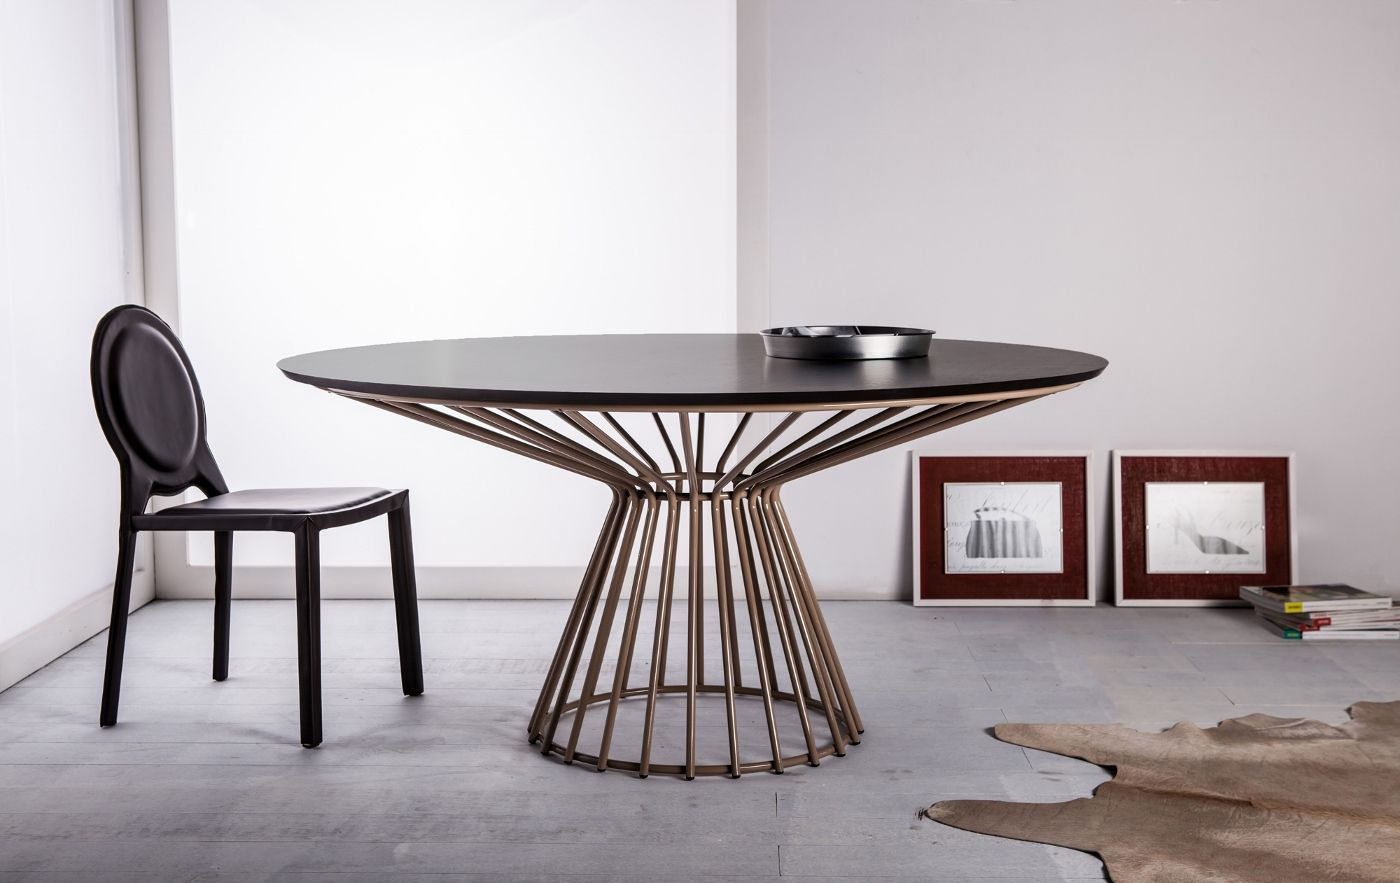 Carlisle Dining Table Furniture Tables Pinterest Carlisle - Carlisle dining table